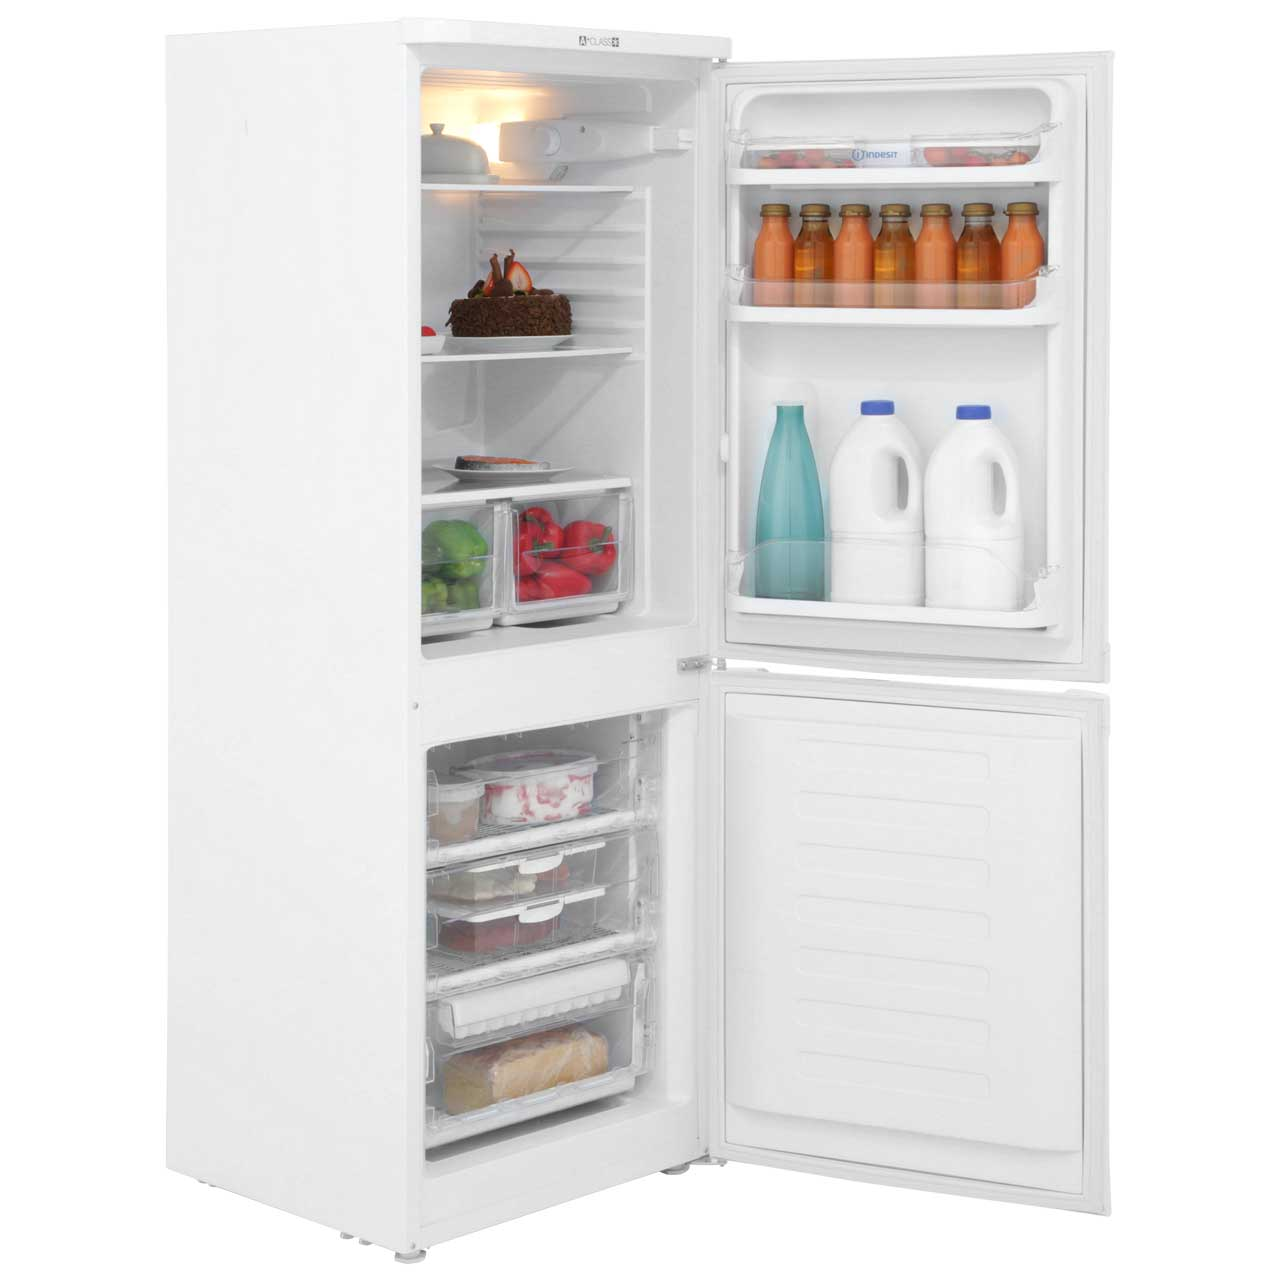 Indesit caa55 fridge freezer review